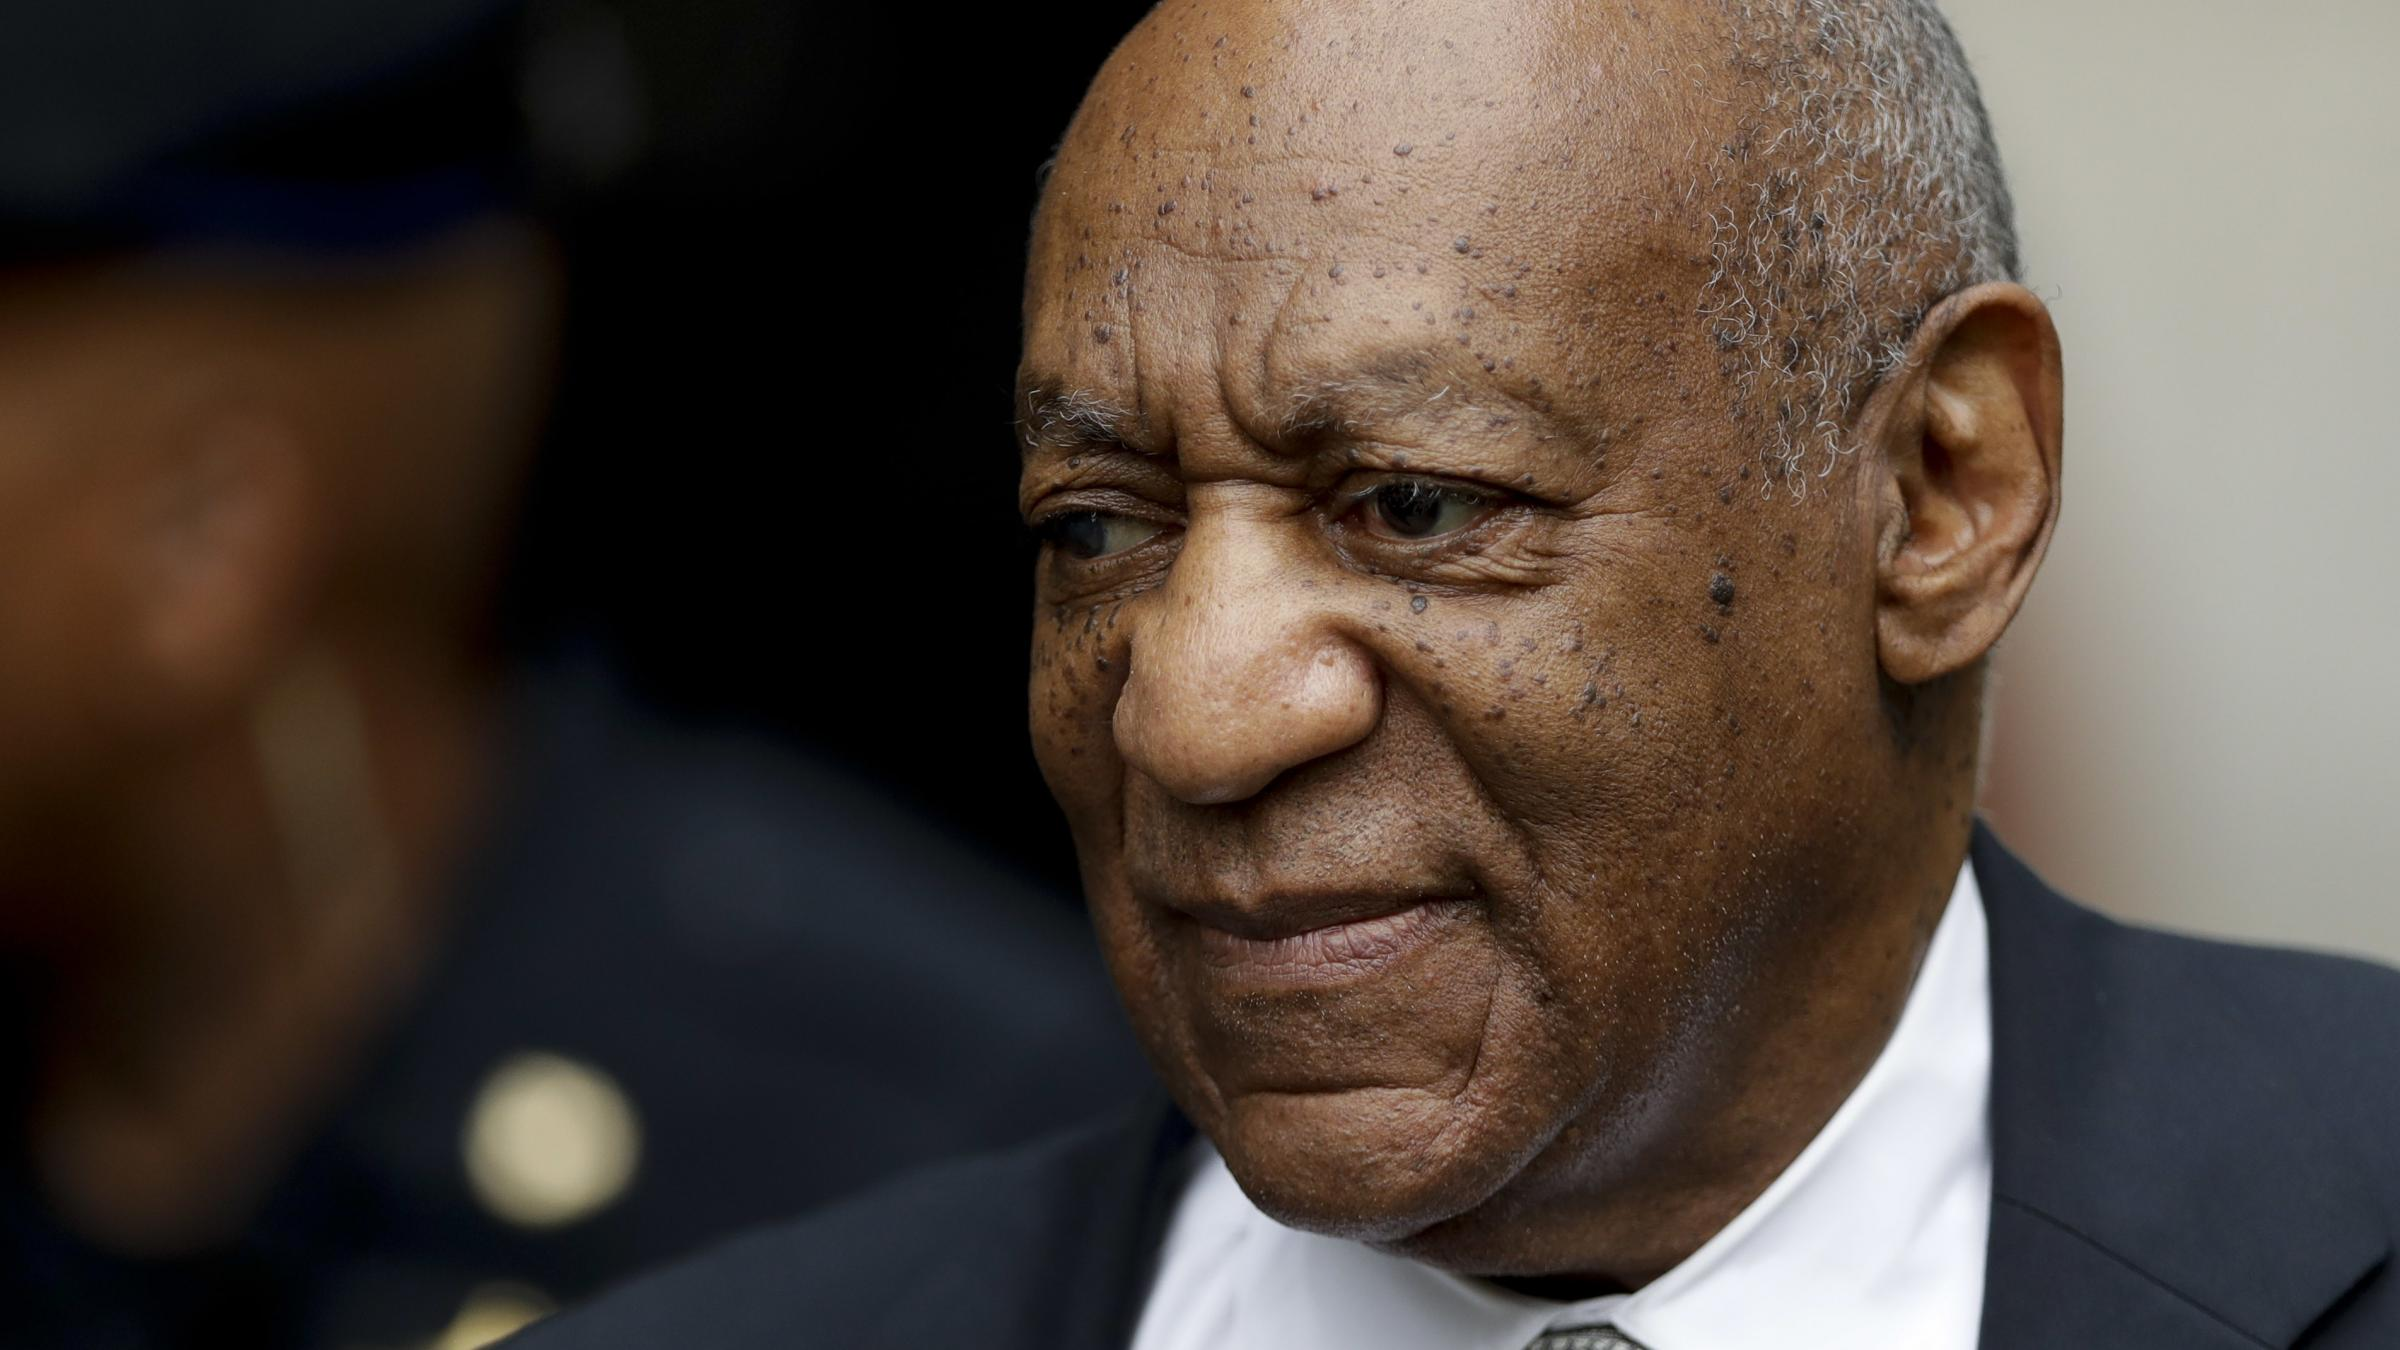 Cosby's lawyer, judge clash as jury pushes patience, clock